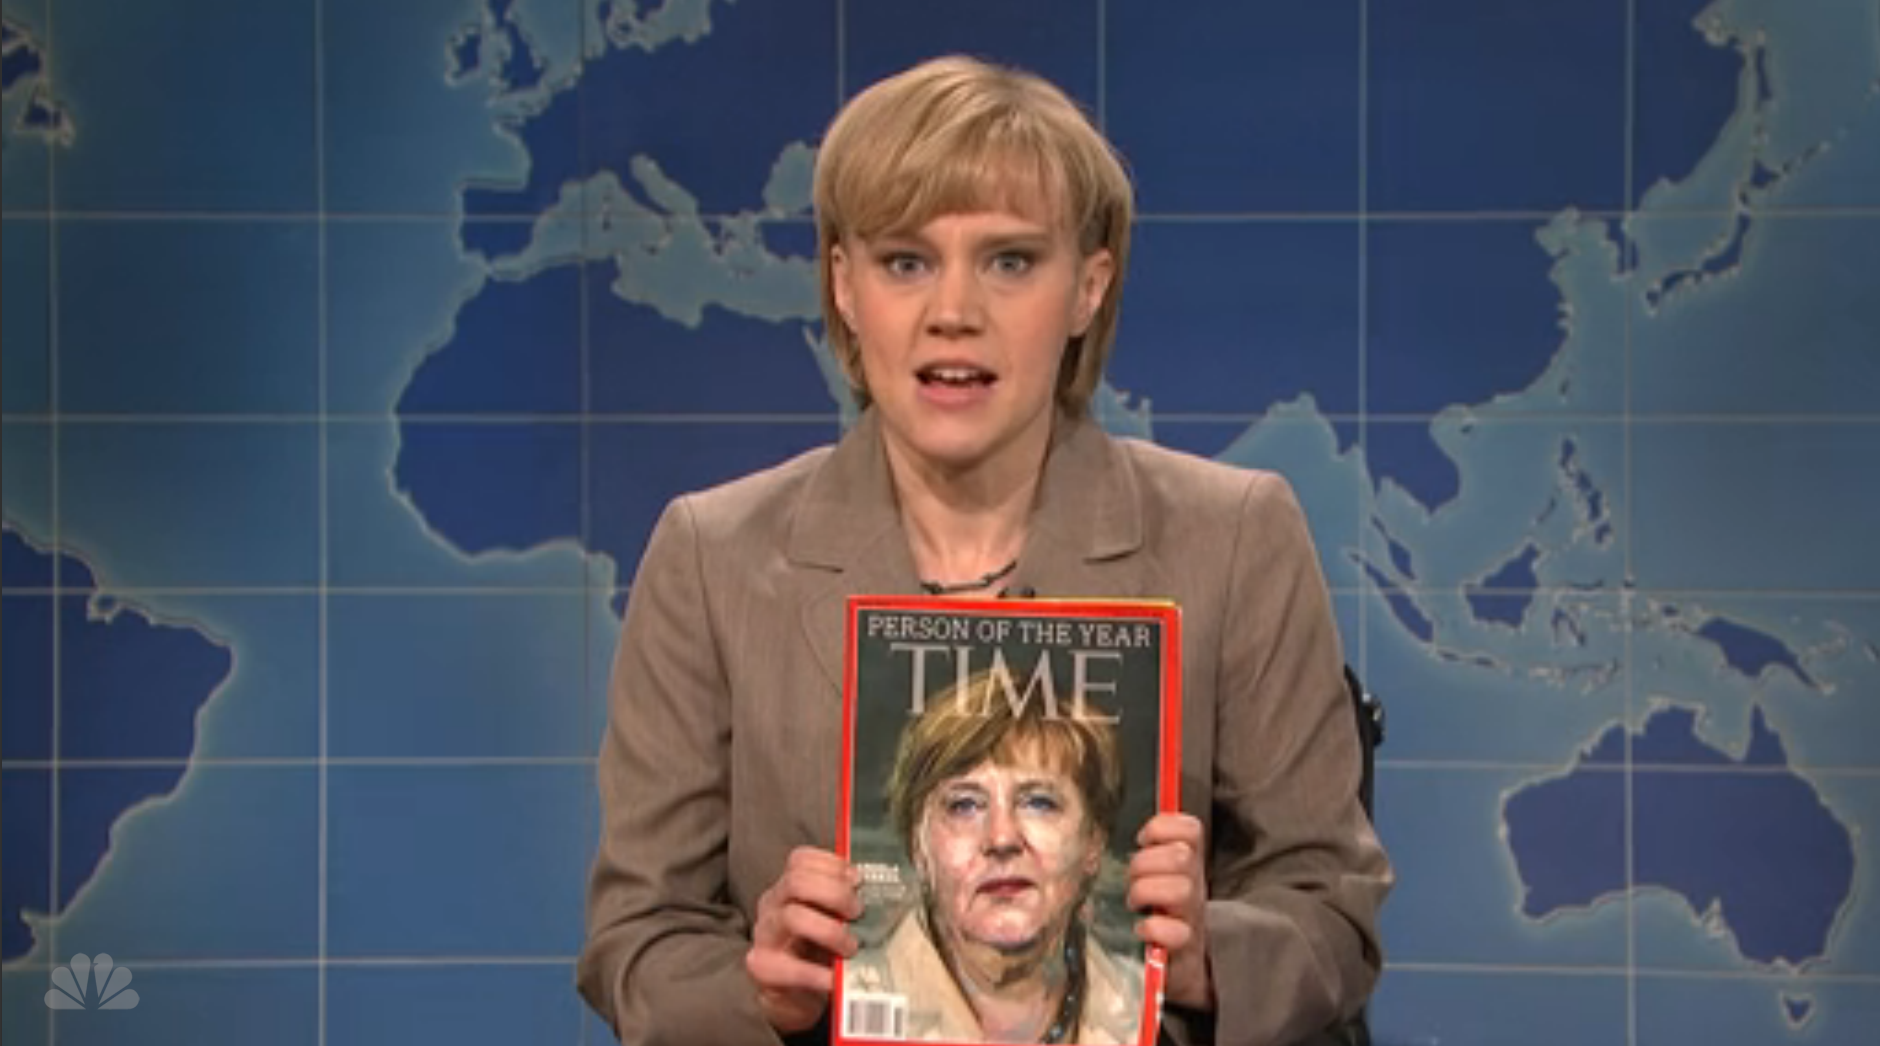 Saturday Night Live spoofed this week's naming of Angela Merkel as TIME's 2015 Person of the Year.